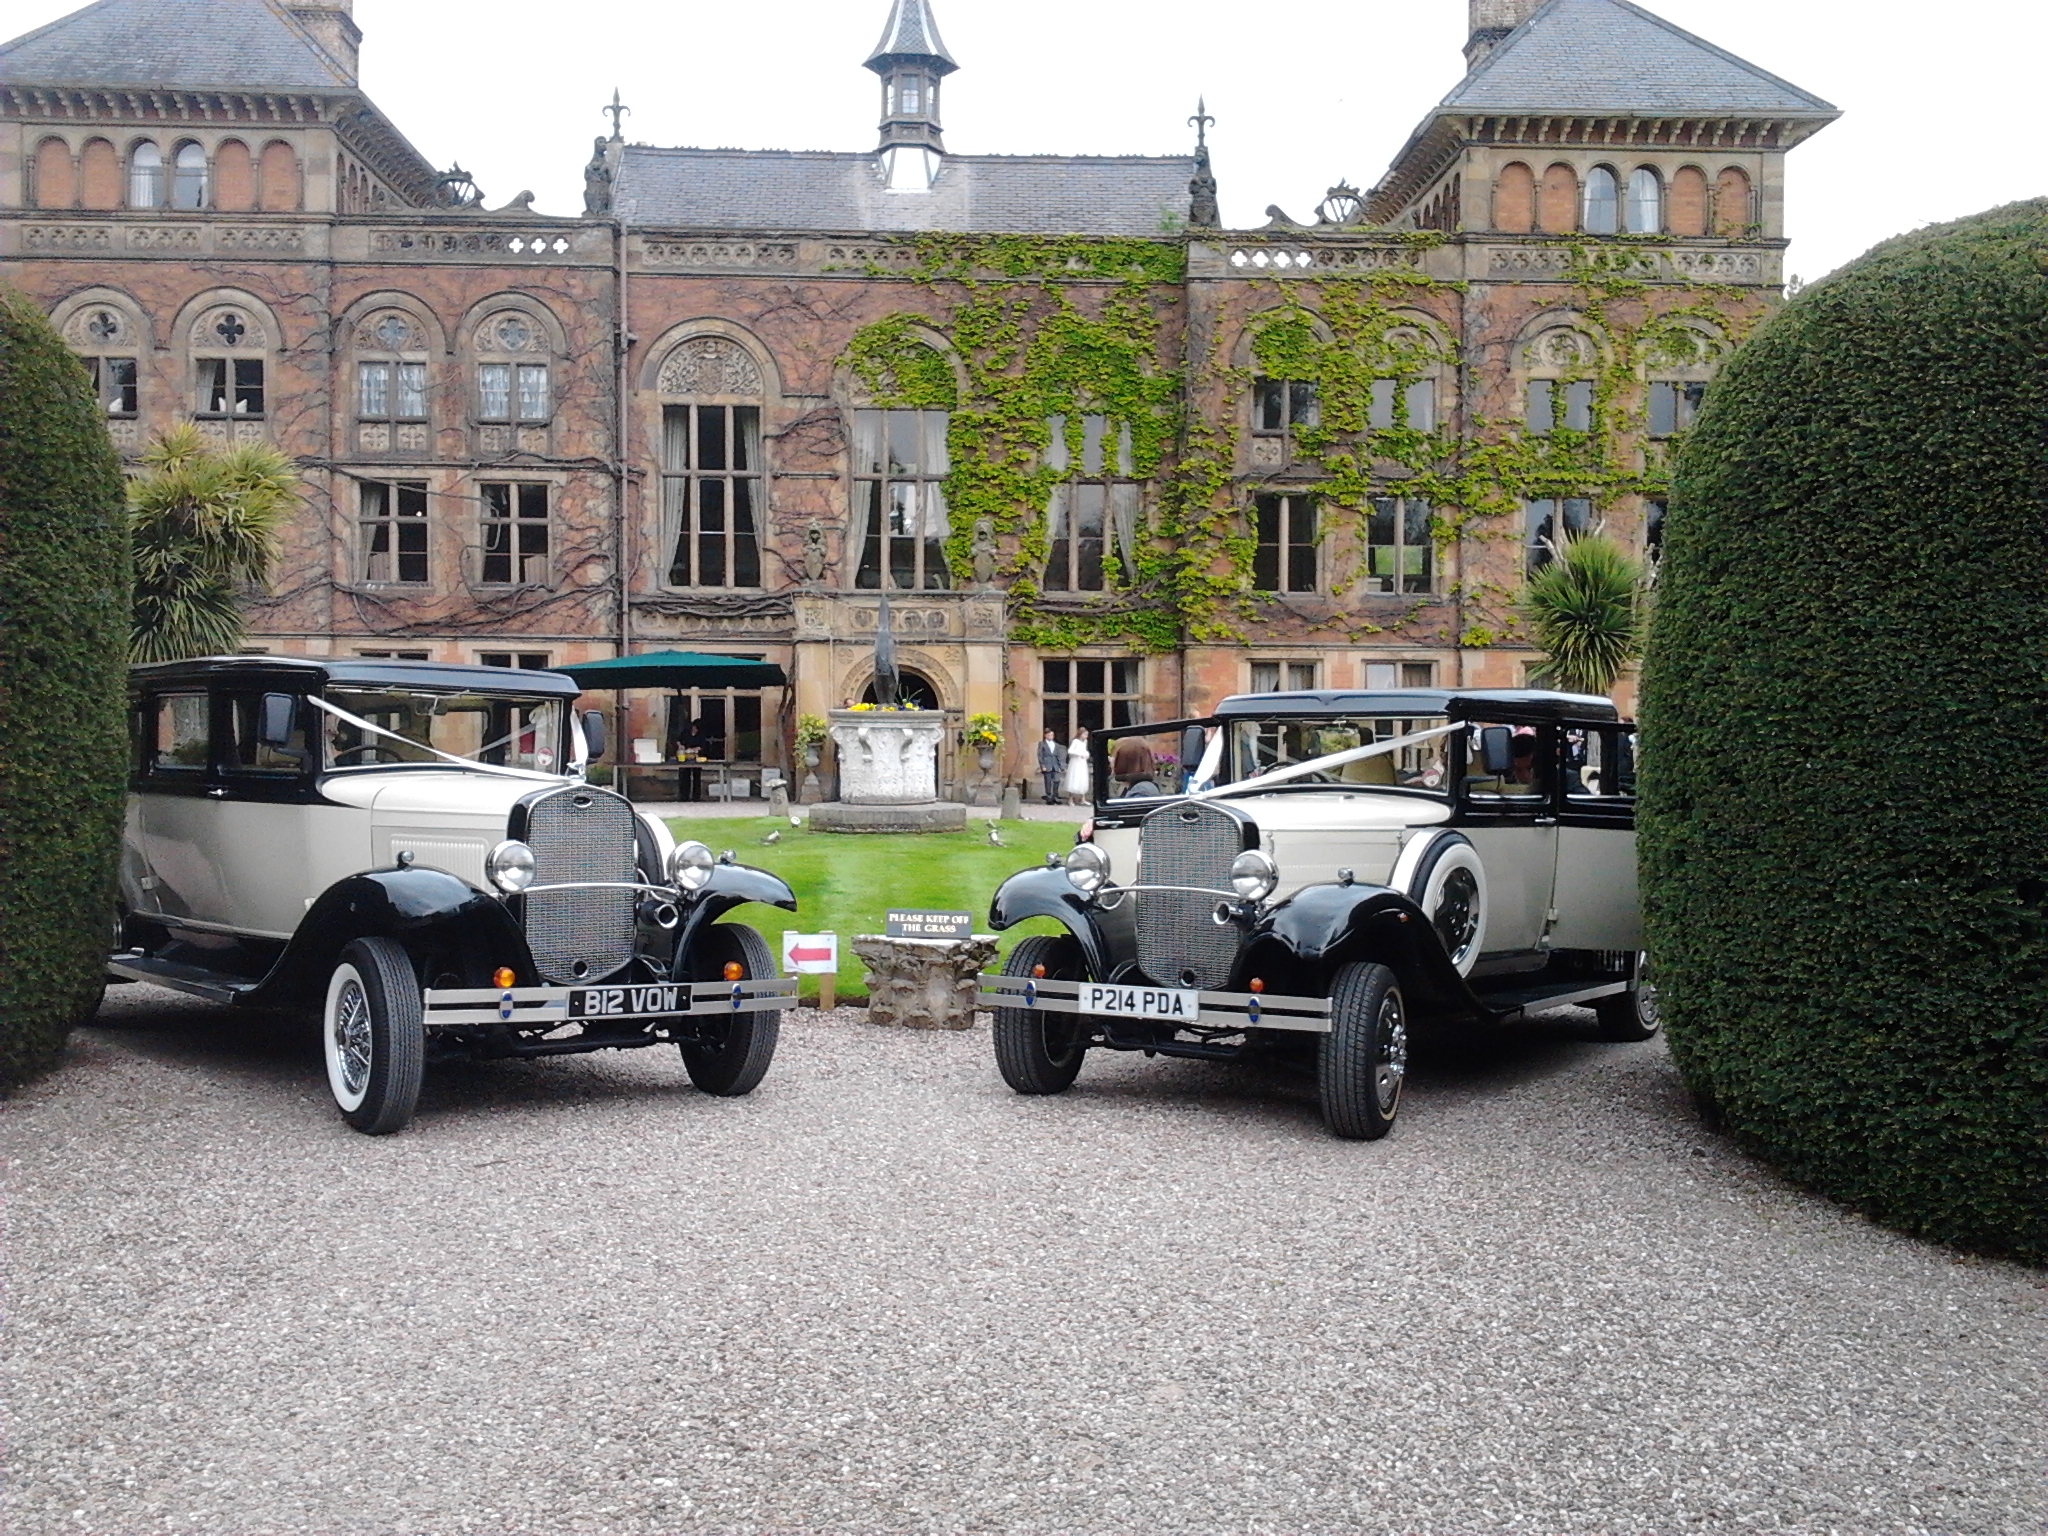 Anniversary Cars Special Offer for The Red Event Wedding Fayre at Leasowe Castle Hotel, Wirral 22nd June 2014